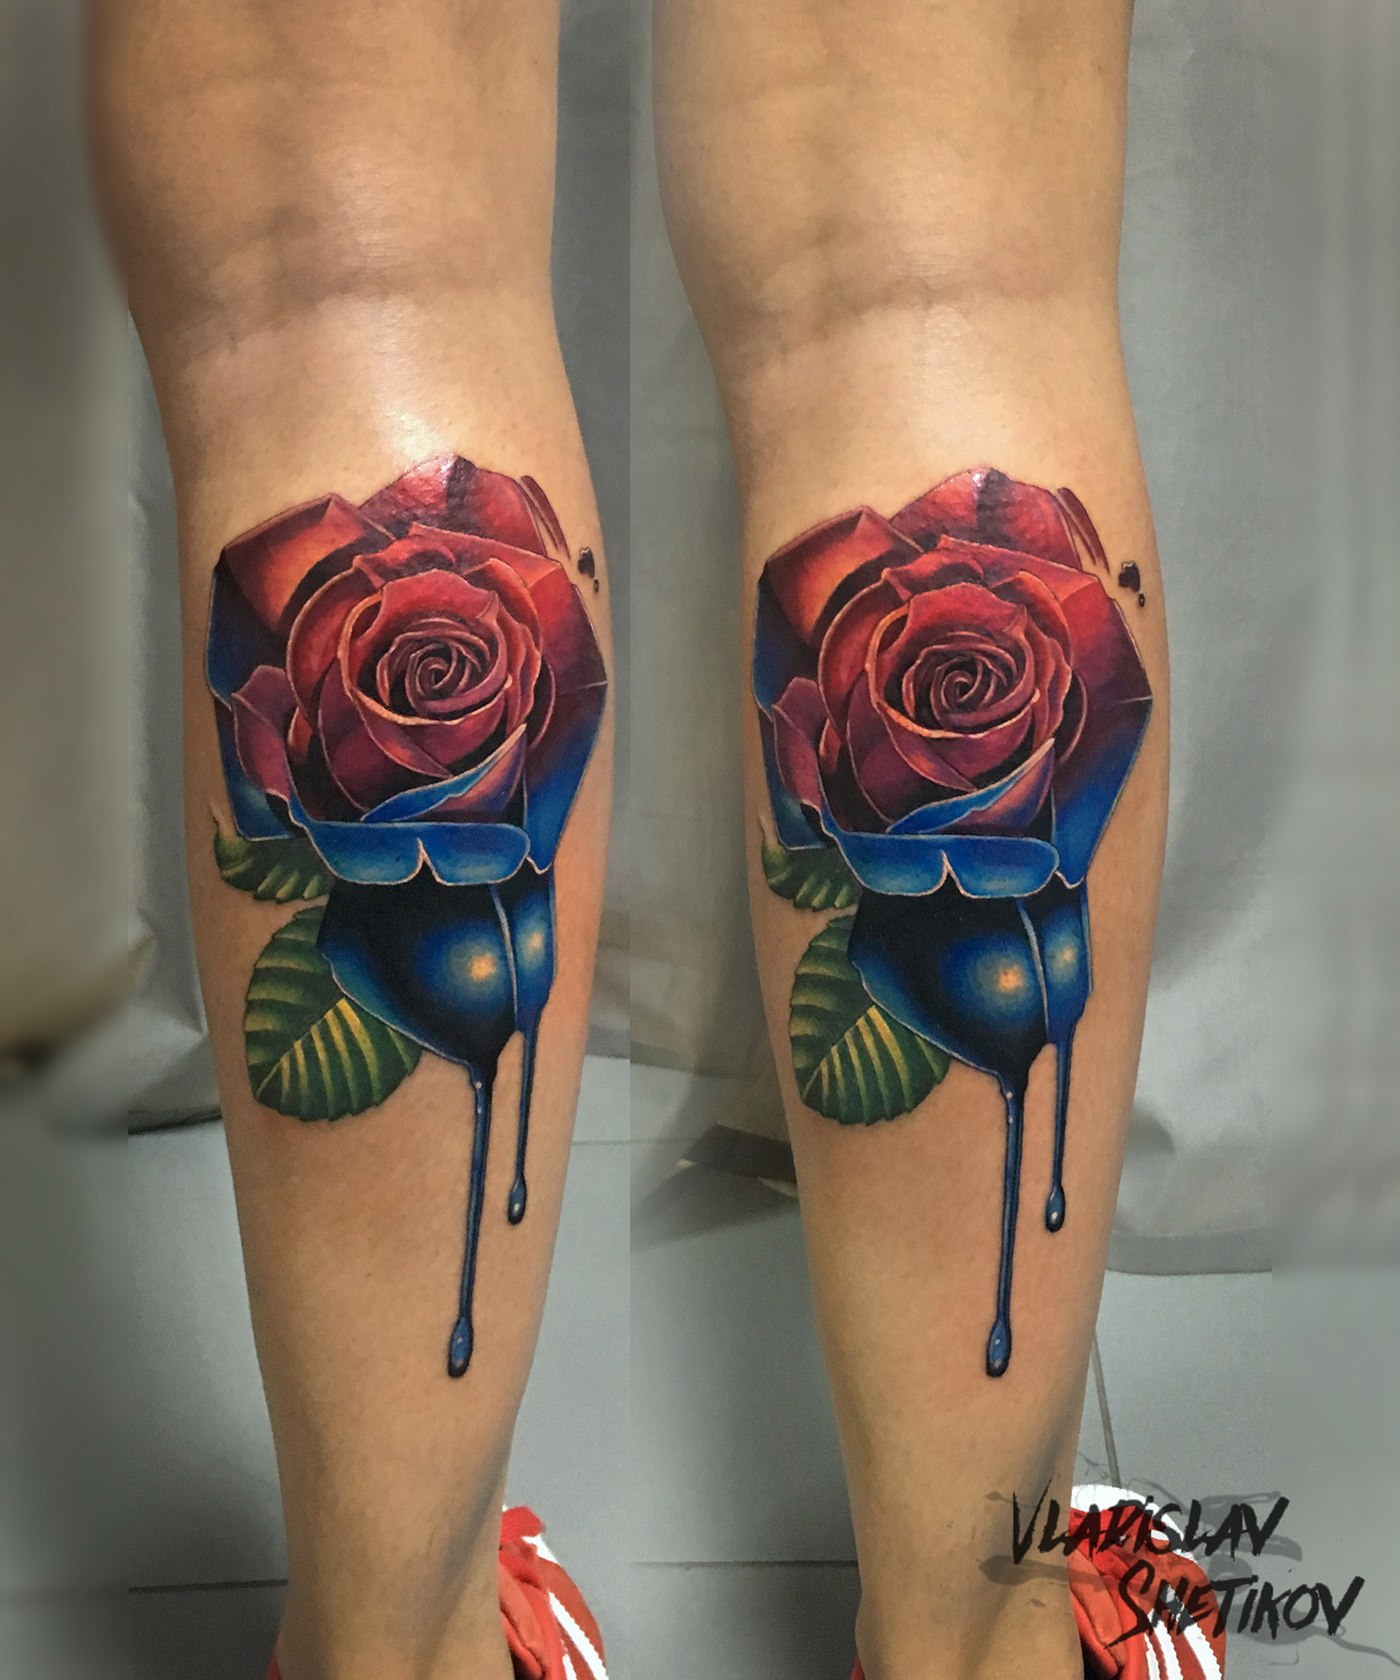 3cf4b04044e94 Two colors red and blue rose tattoo on leg by Vladislav Shetikov -  Tattooimages.biz